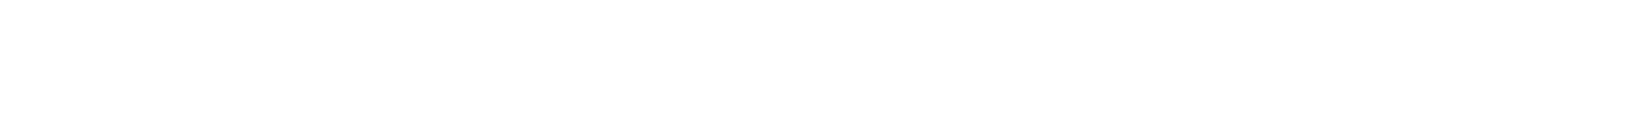 Innovative ETFs Channel - ETF Trends